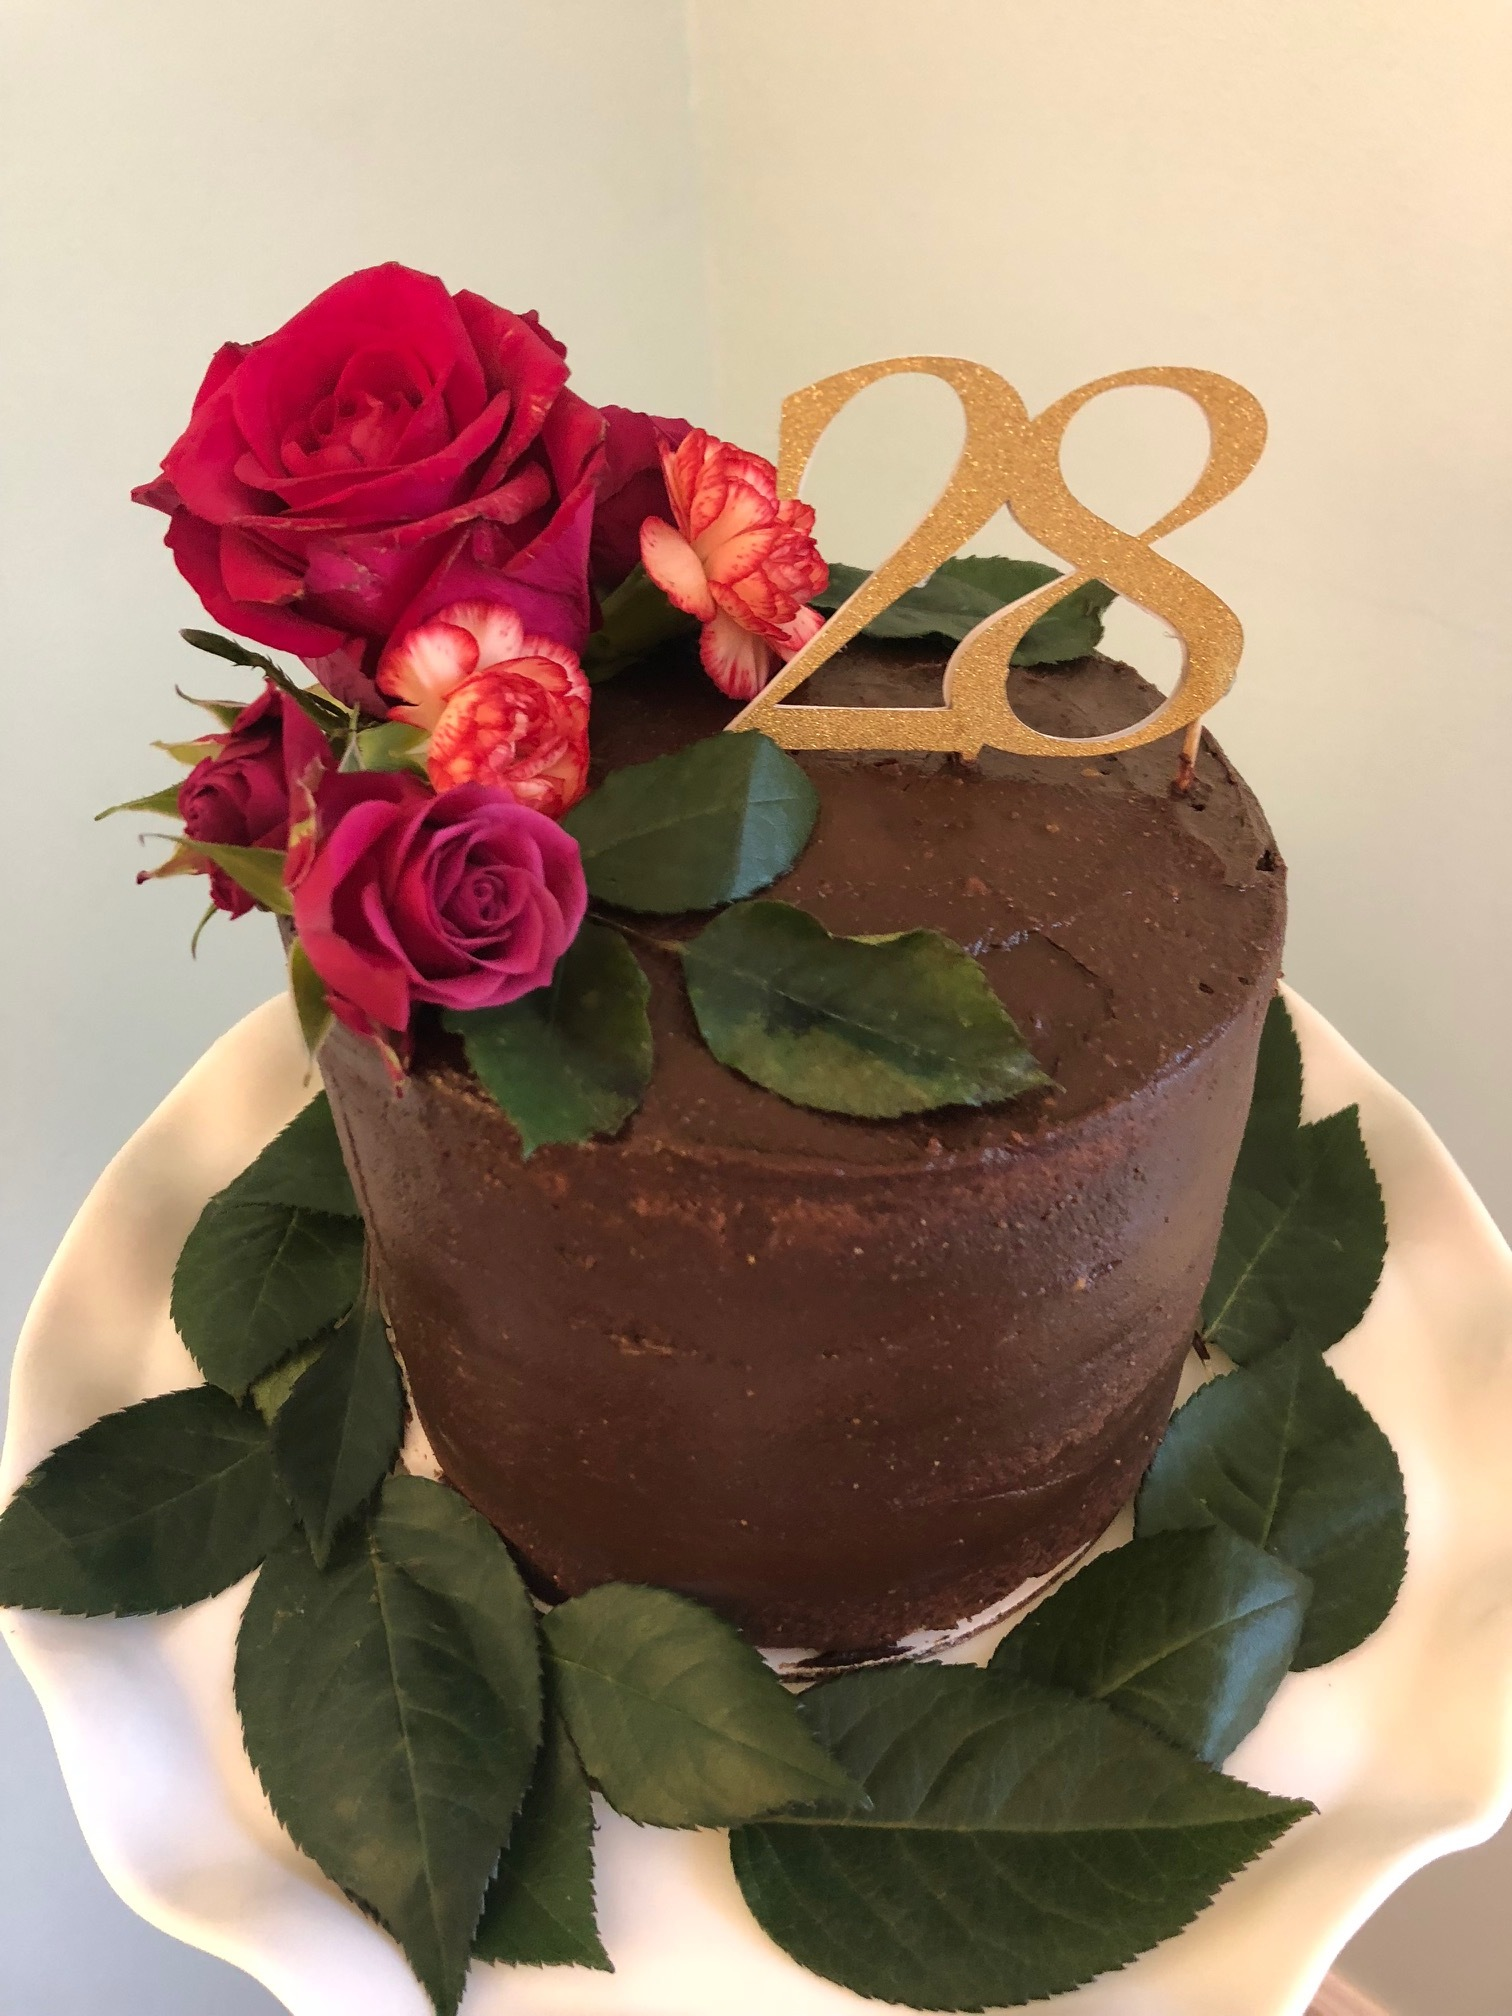 Grain free chocolate birthday cake   This cake is made from almond flour and does not contain any refined sugar.